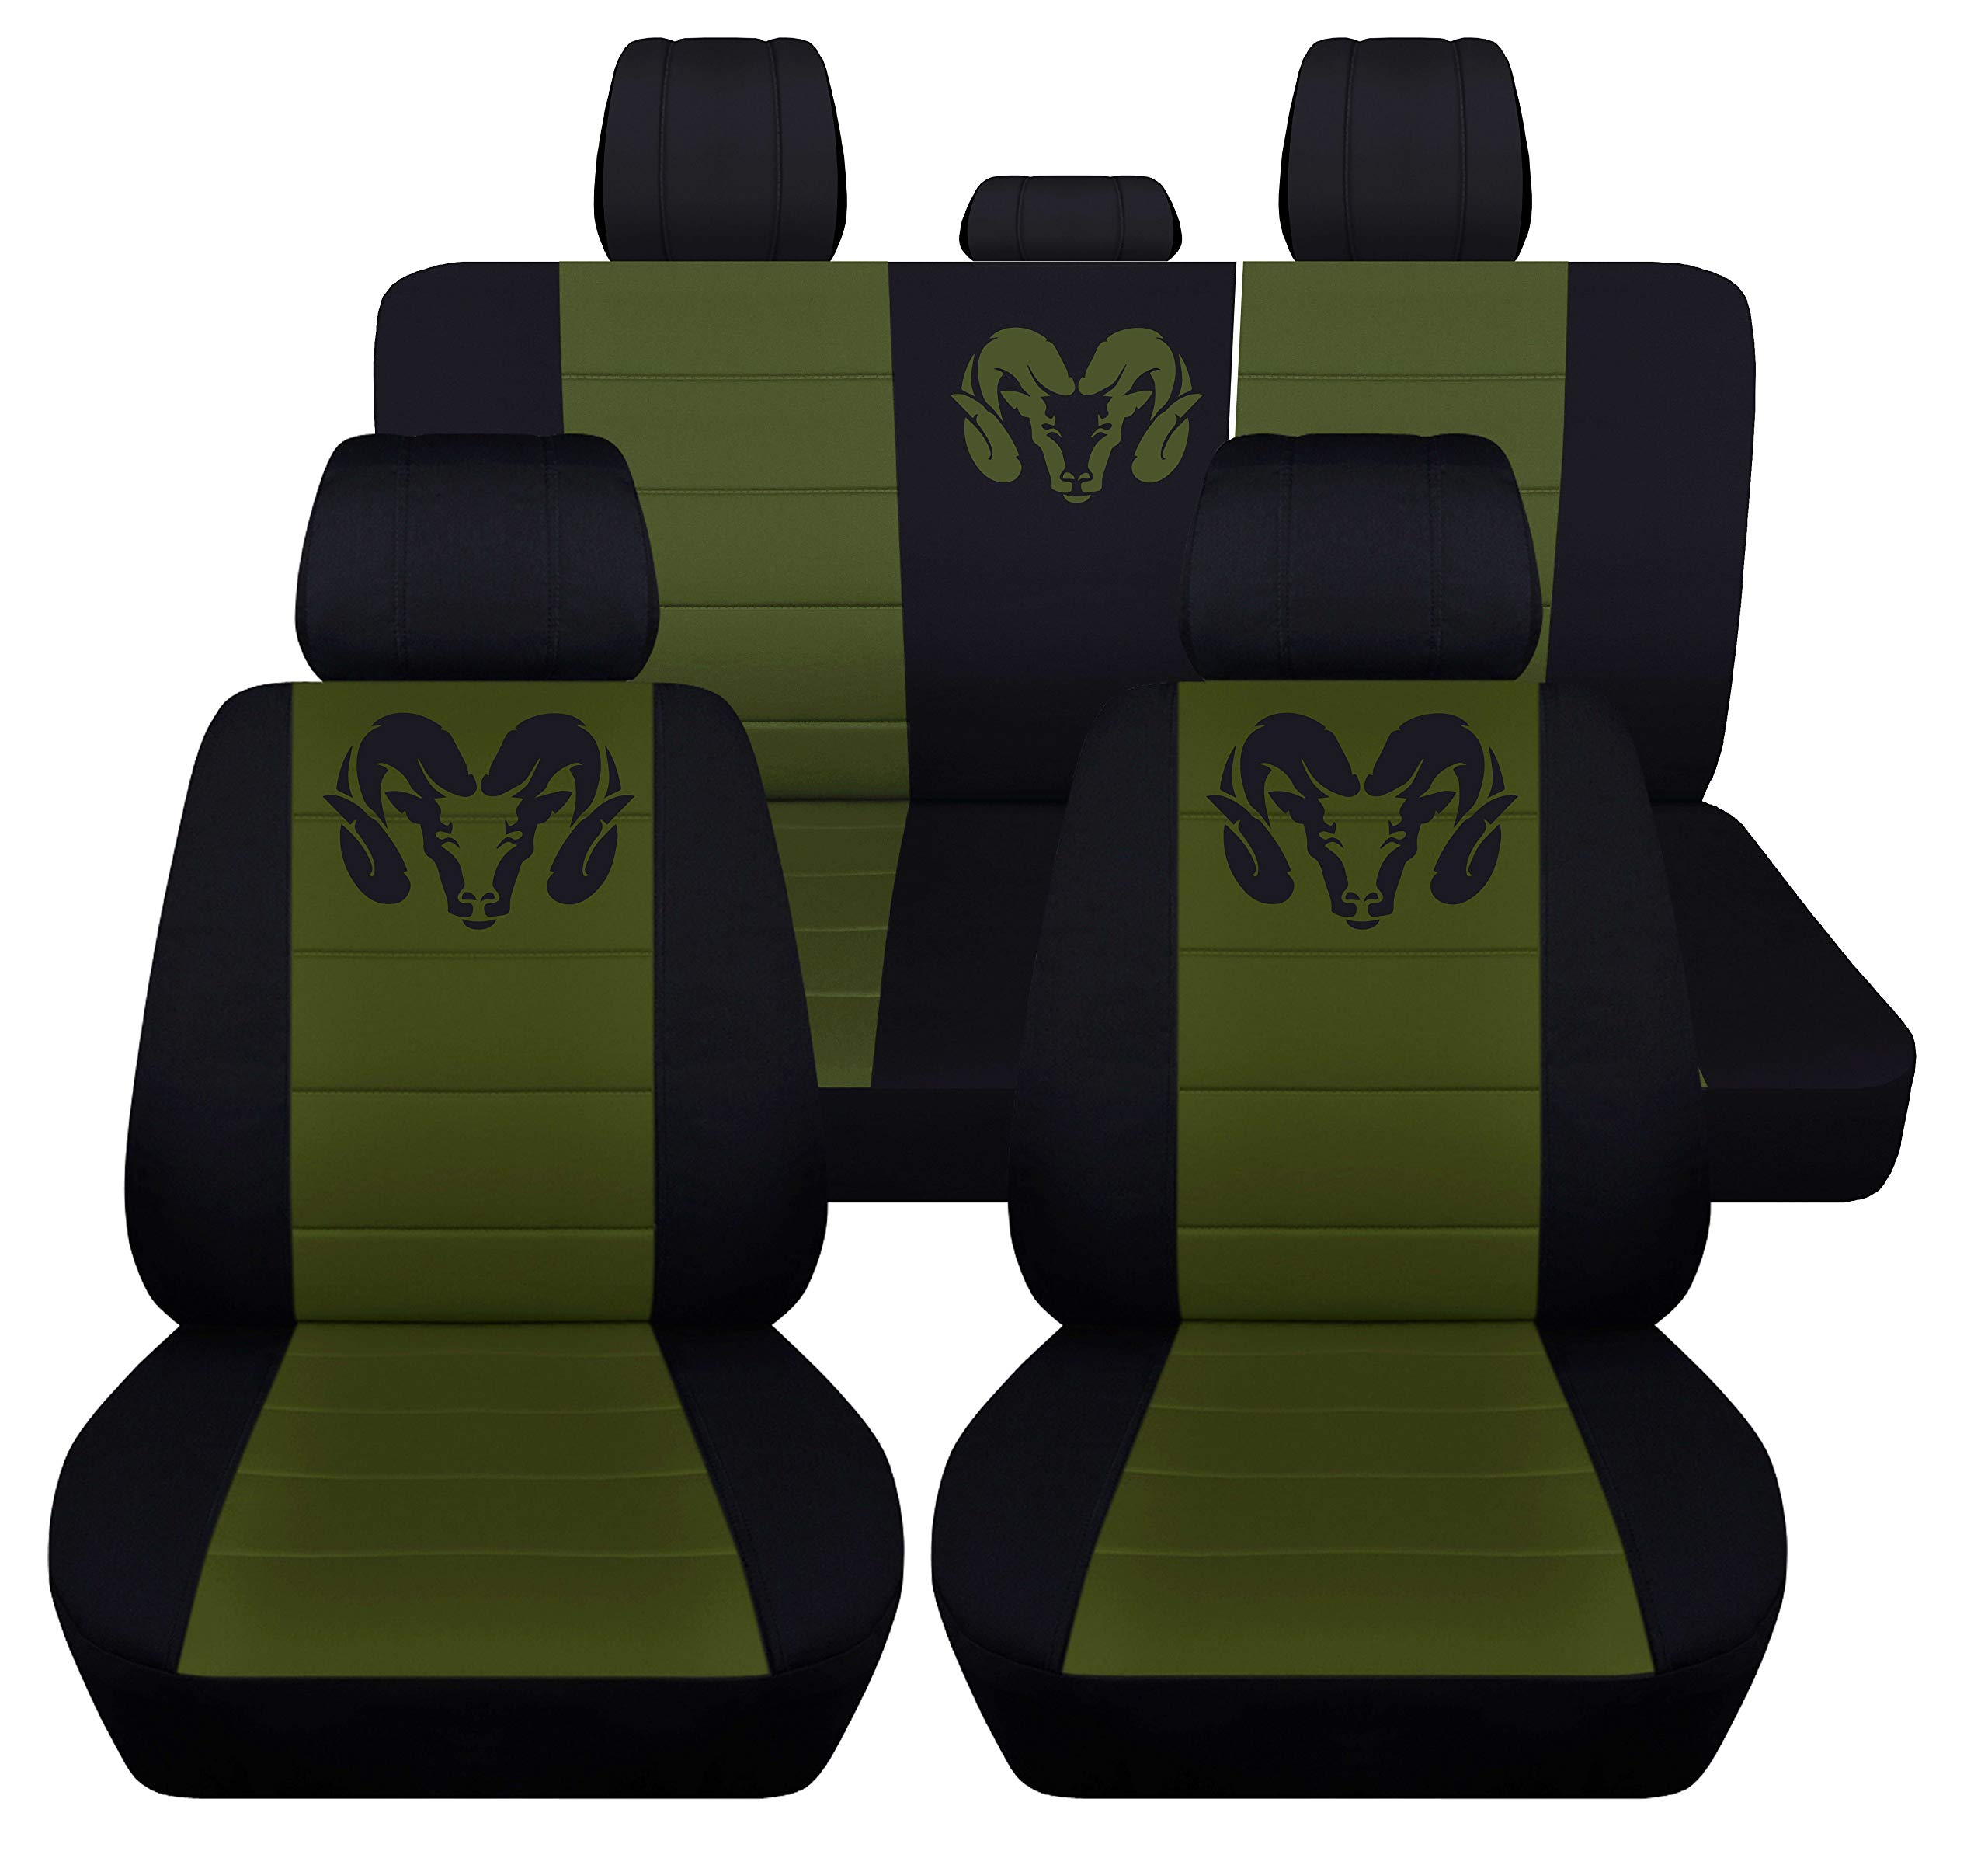 Fits 2012 to 2018 Dodge Ram Front and Rear Ram Seat Covers 22 Color Options (Solid Rear Bench, Black Hunter Green)